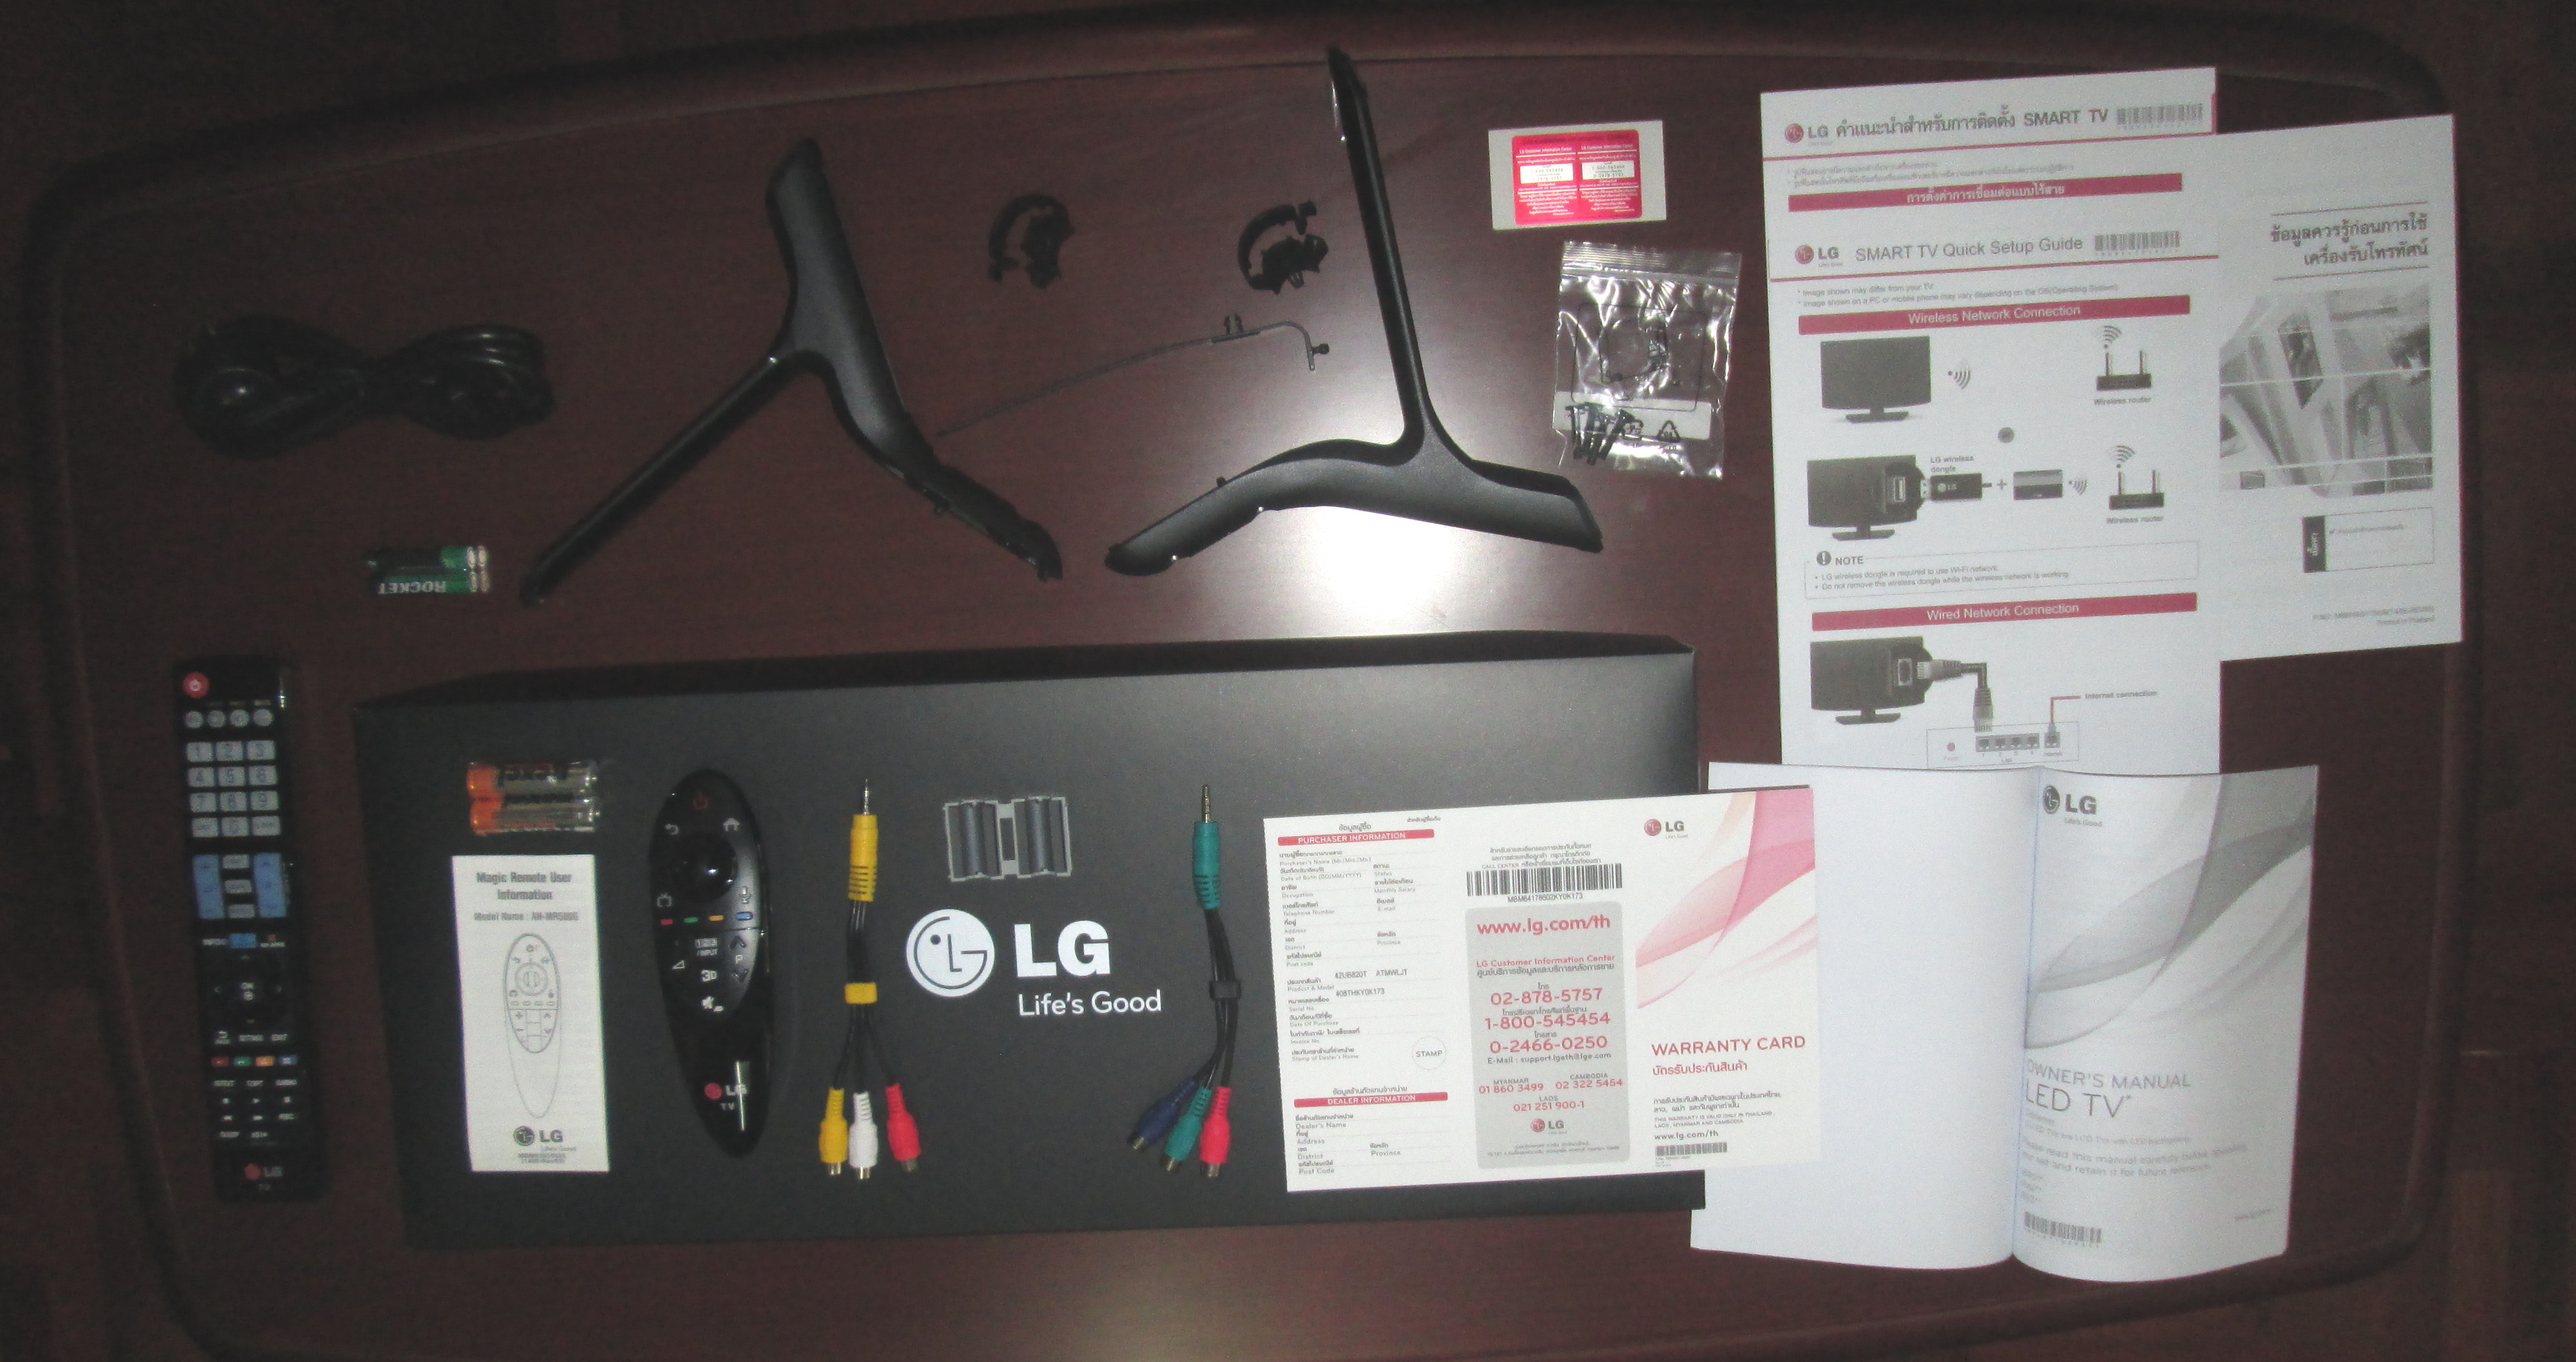 lg 42ub820t 4k uhd tv review rh cnx software com 42 Inch LG TV Problems lg 42 inch led 3d smart tv manual